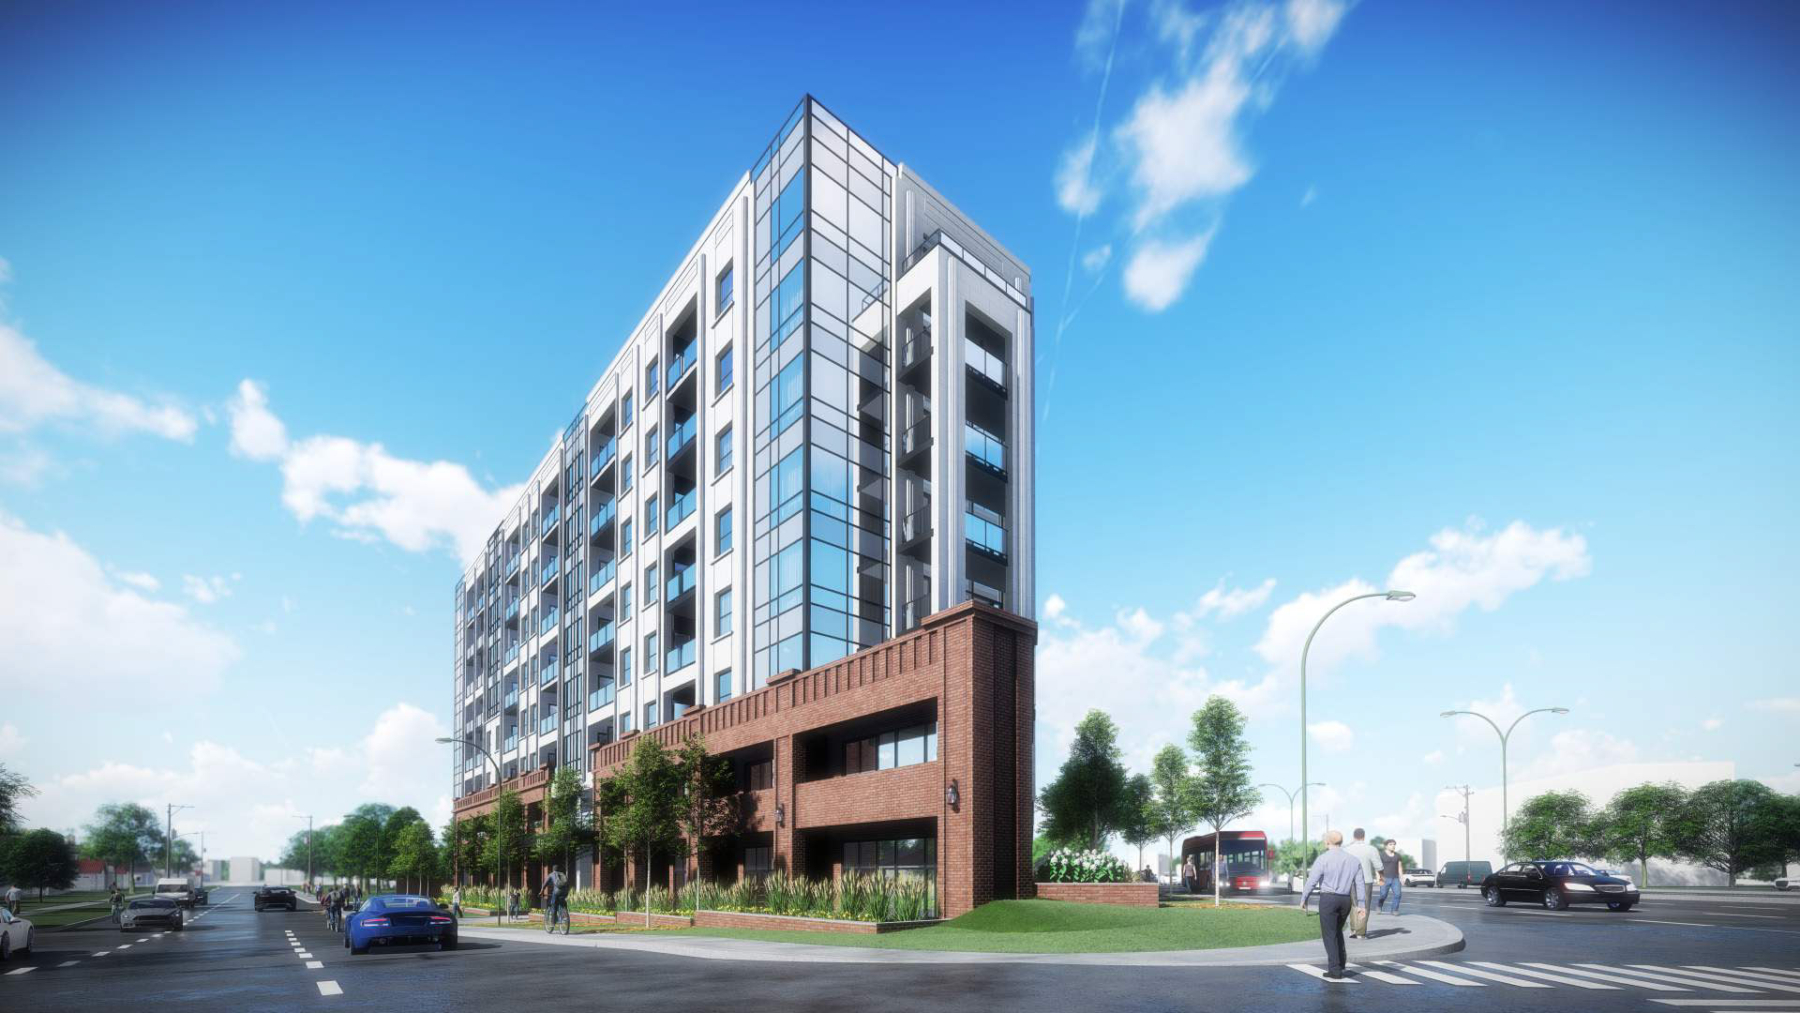 Exterior rendering of 4151 Kingston Road Condos front angled view